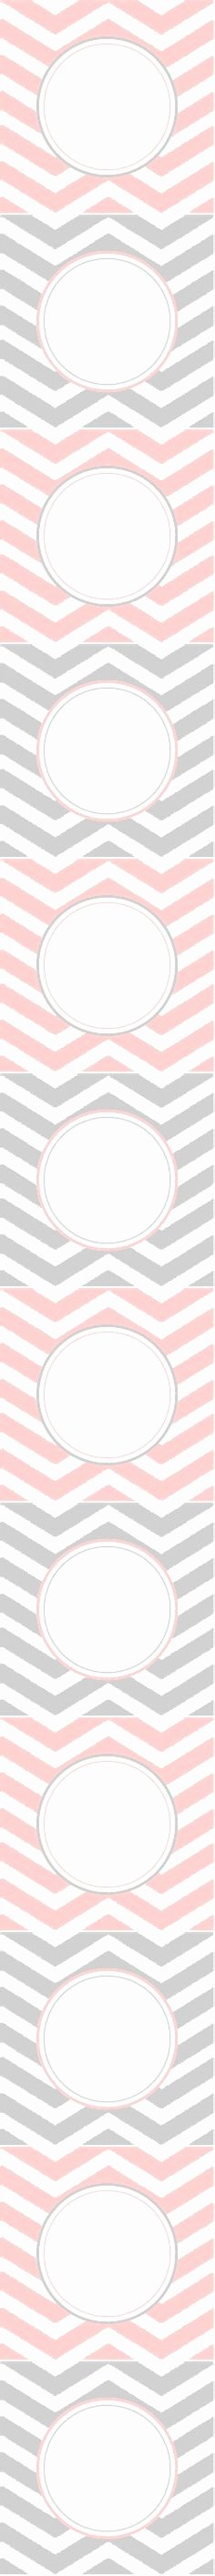 Baby Shower Gift Tag Template Awesome Free Printable Favor Tags for Baby Shower